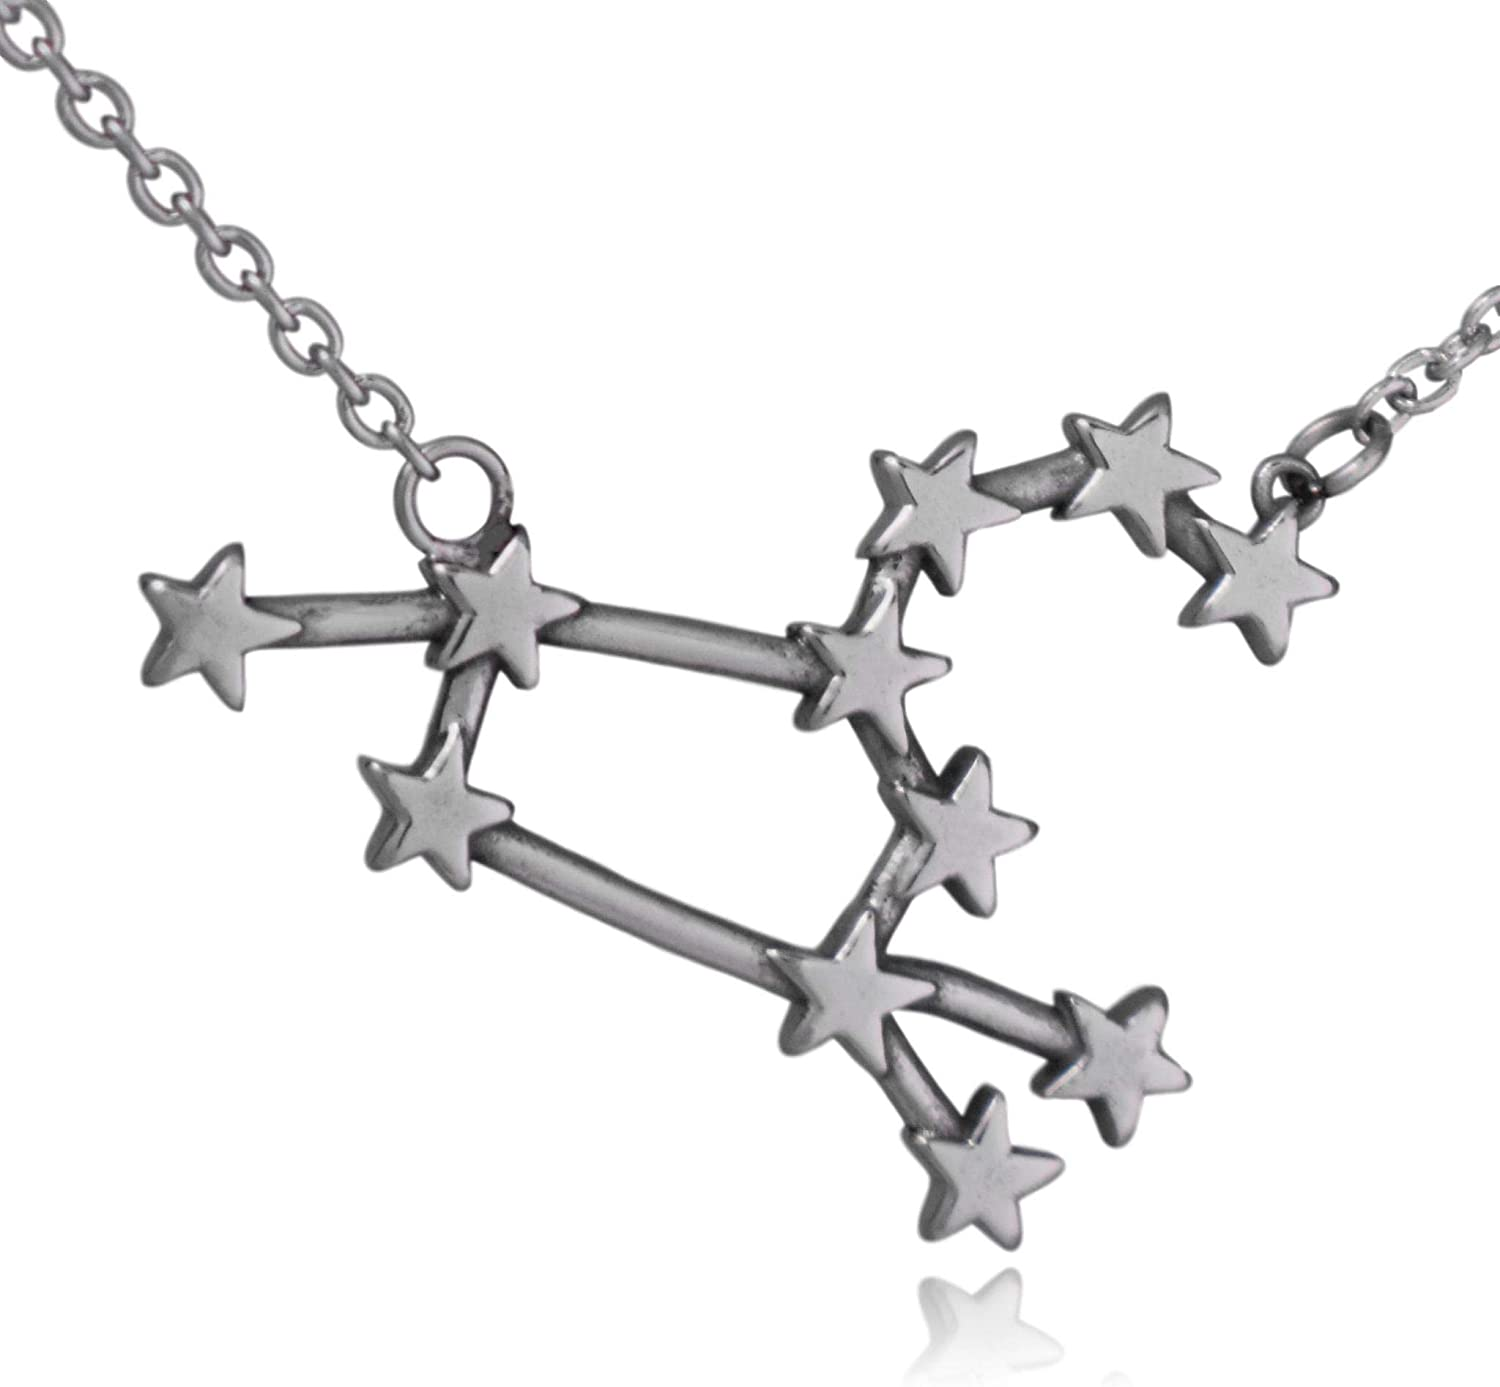 Clayton Jewelry Labs Leo Zodiac Constellation Sign Symbol Stainless Steel Pendant Necklace